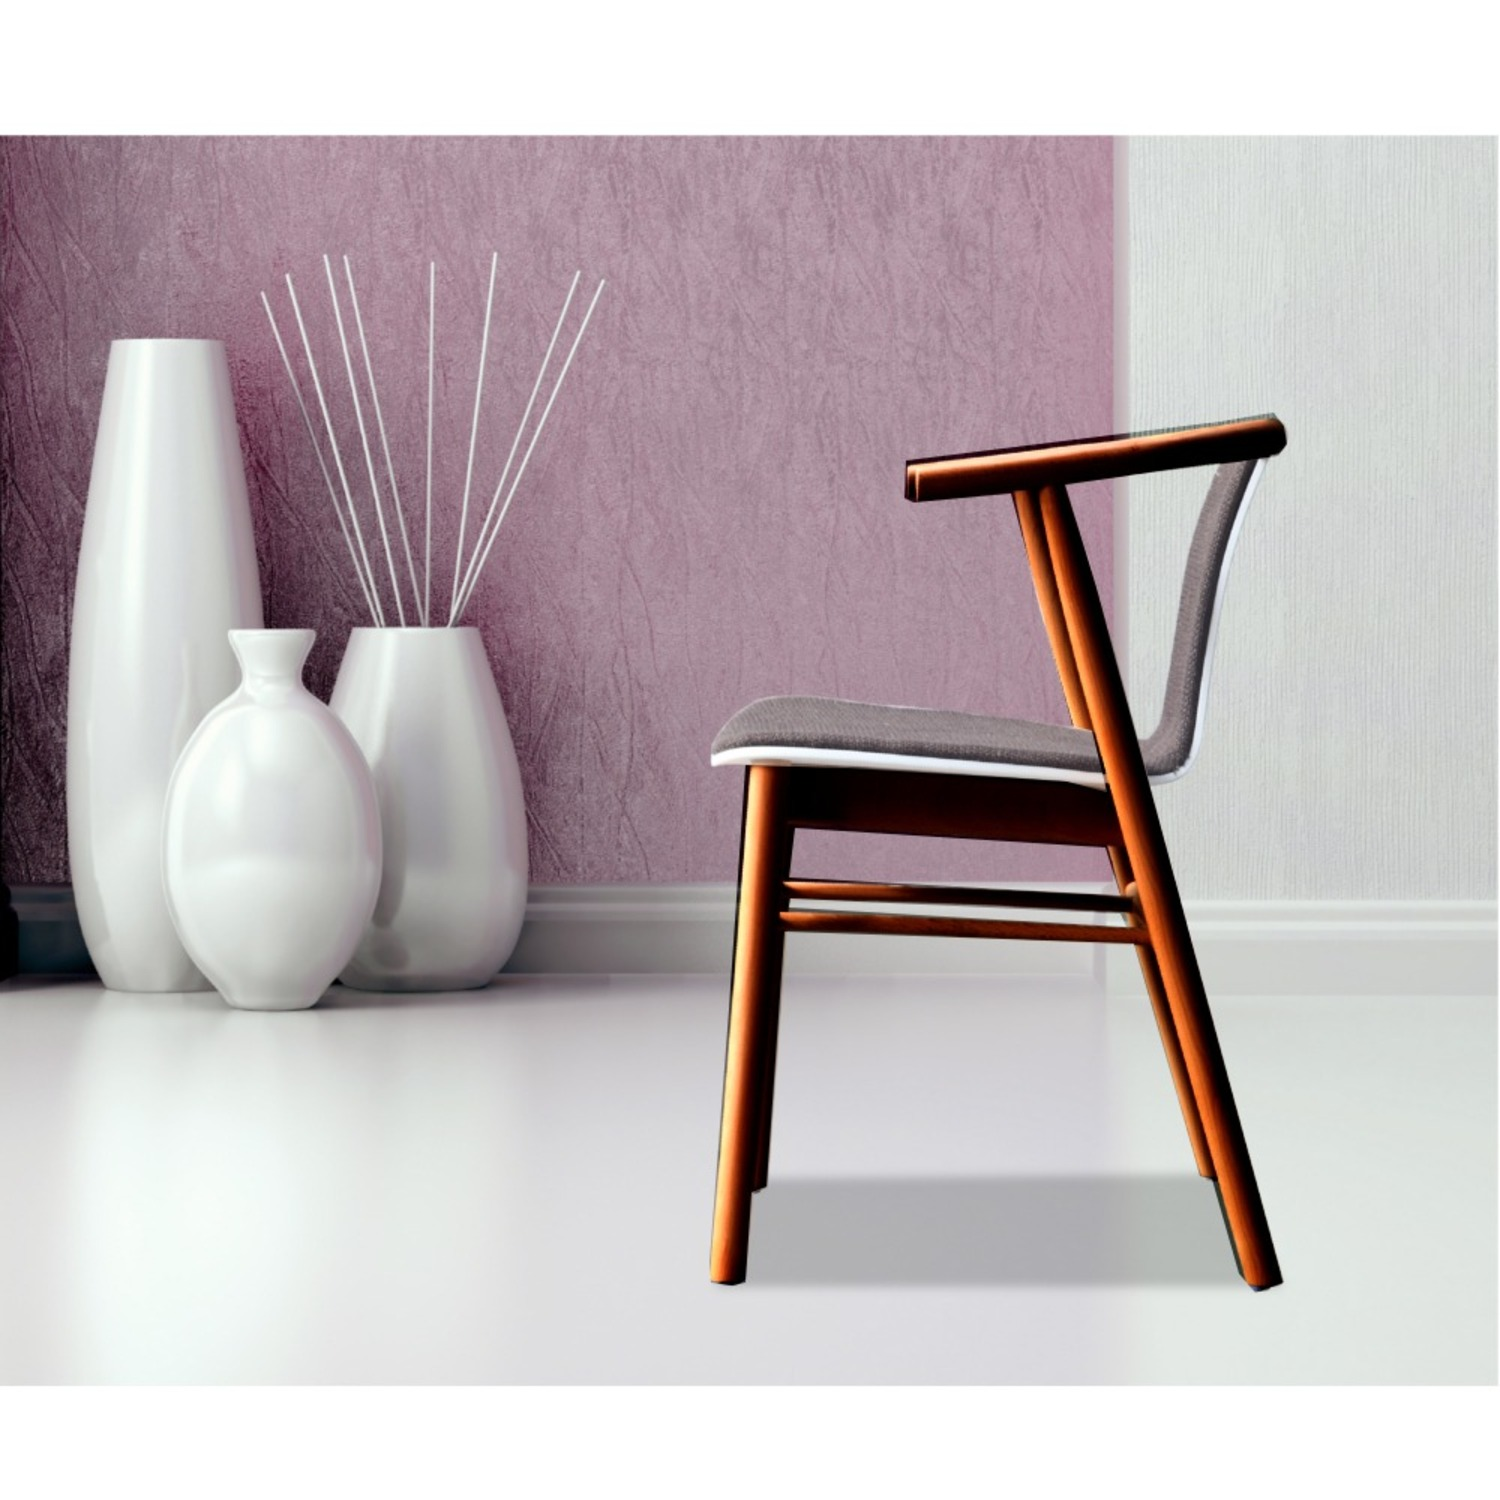 Side Chair In Walnut Wood Frame W/ Cotton Seat - image-5